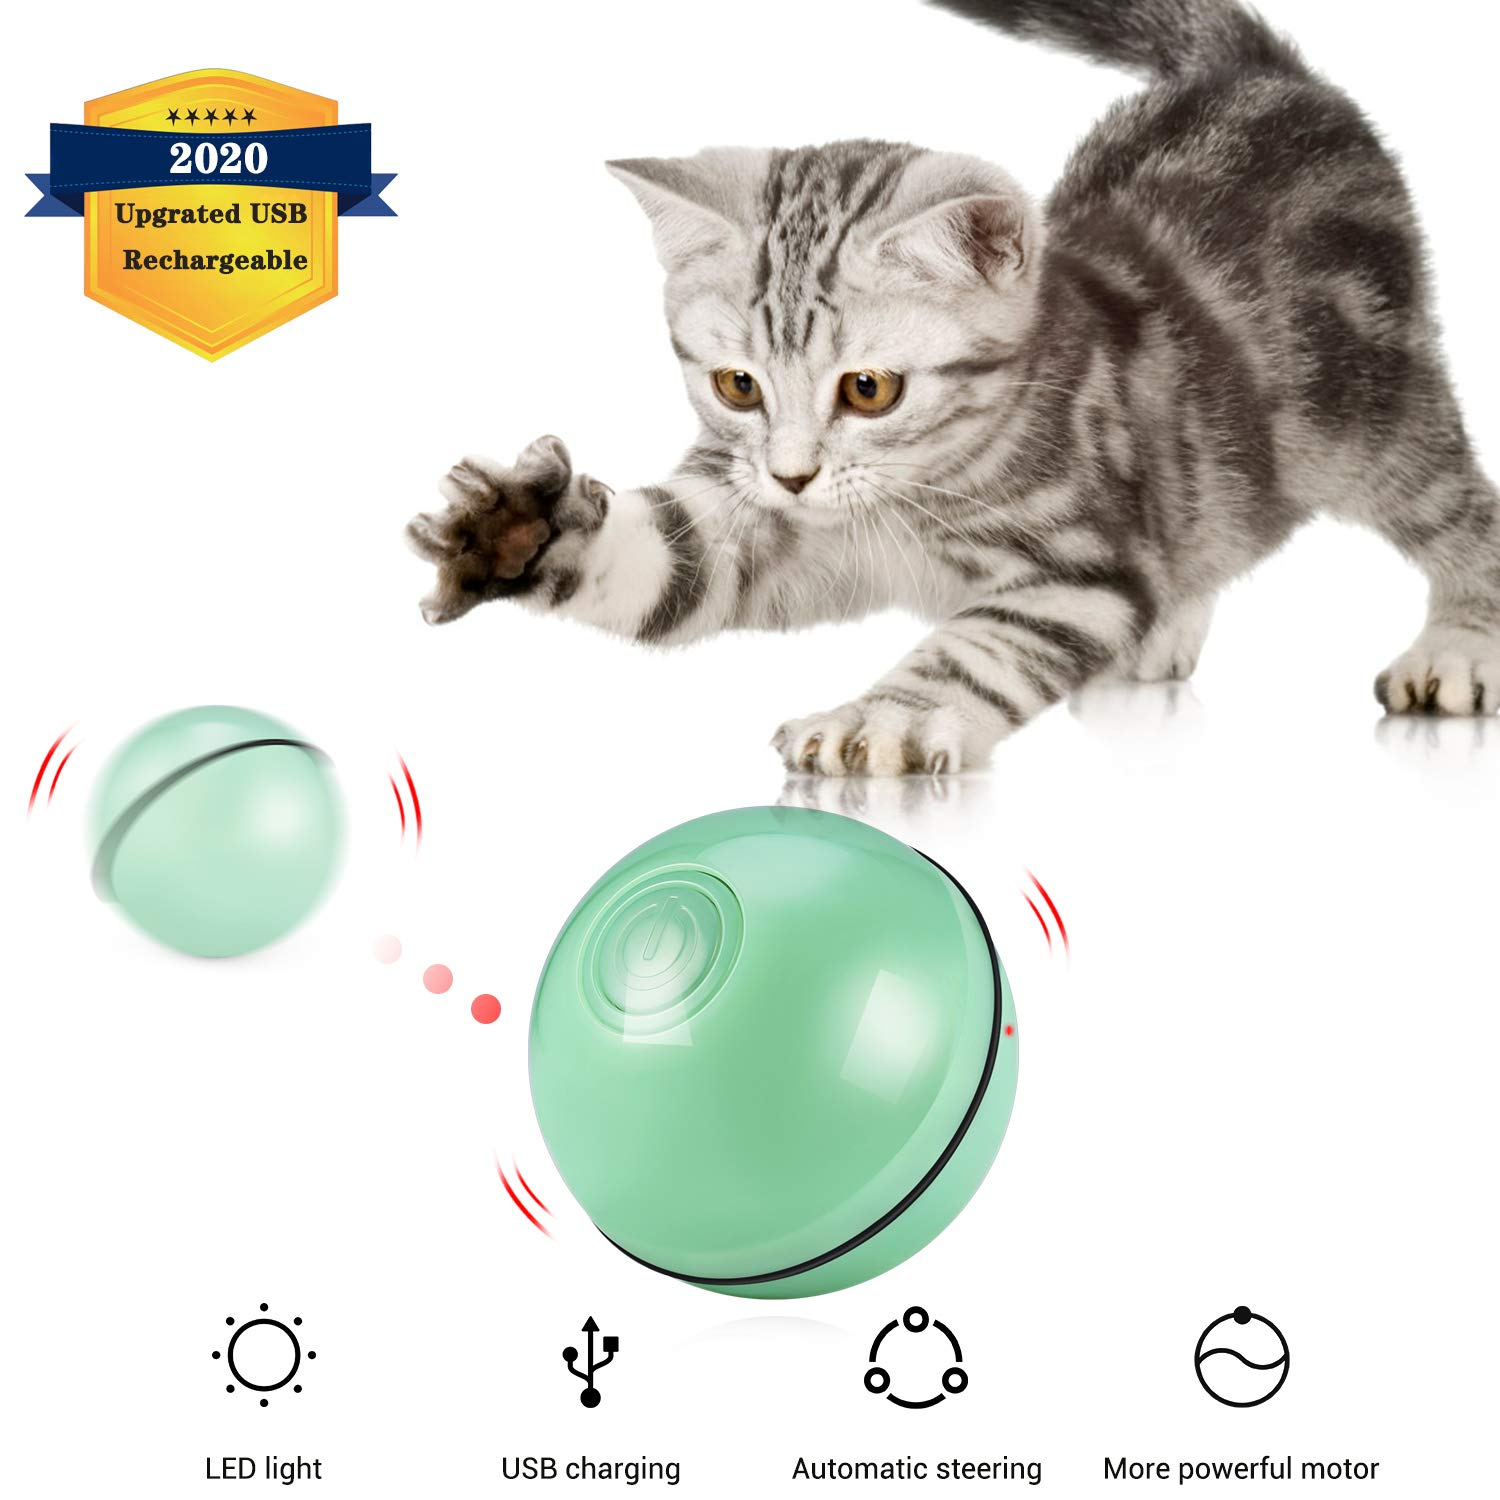 Kitty Loving Interactive Cat Toys Balls, Upgrated USB Rechargeable& Automatic 360 Degree Self-Rotating Ball with Red LED…